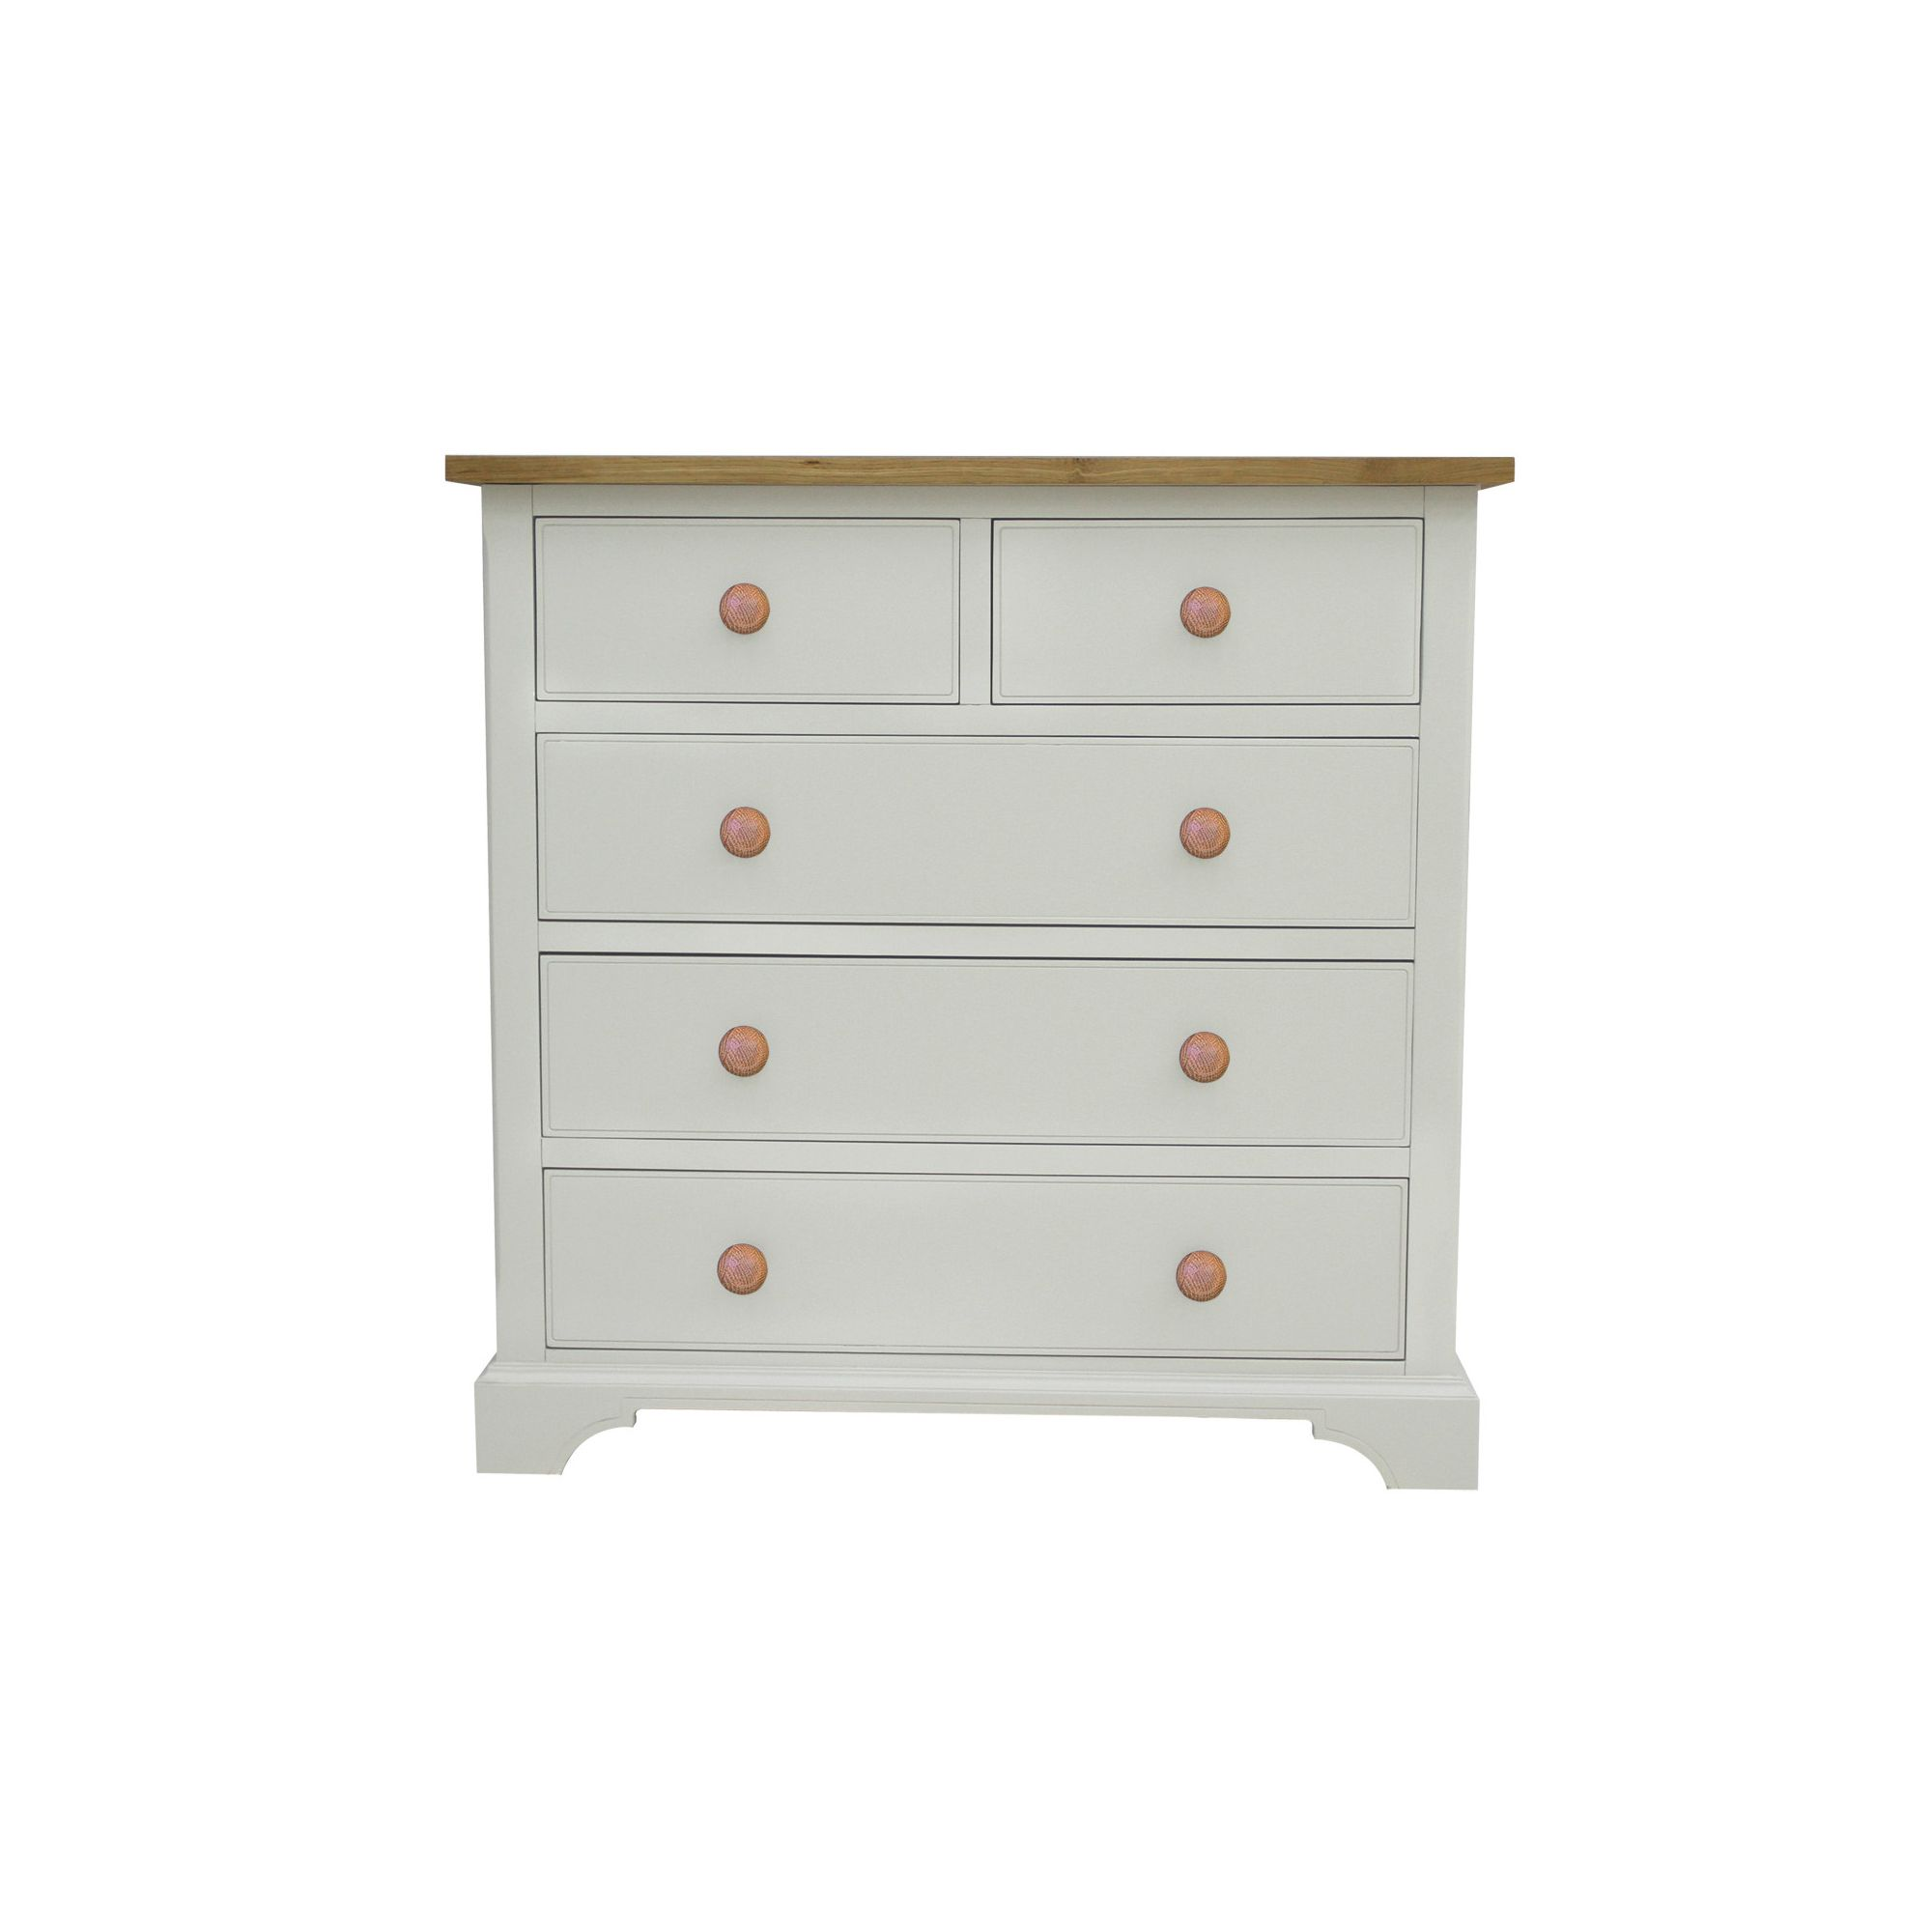 Thorndon Highgrove Bedroom 2 Over 3 Drawer Chest at Tesco Direct